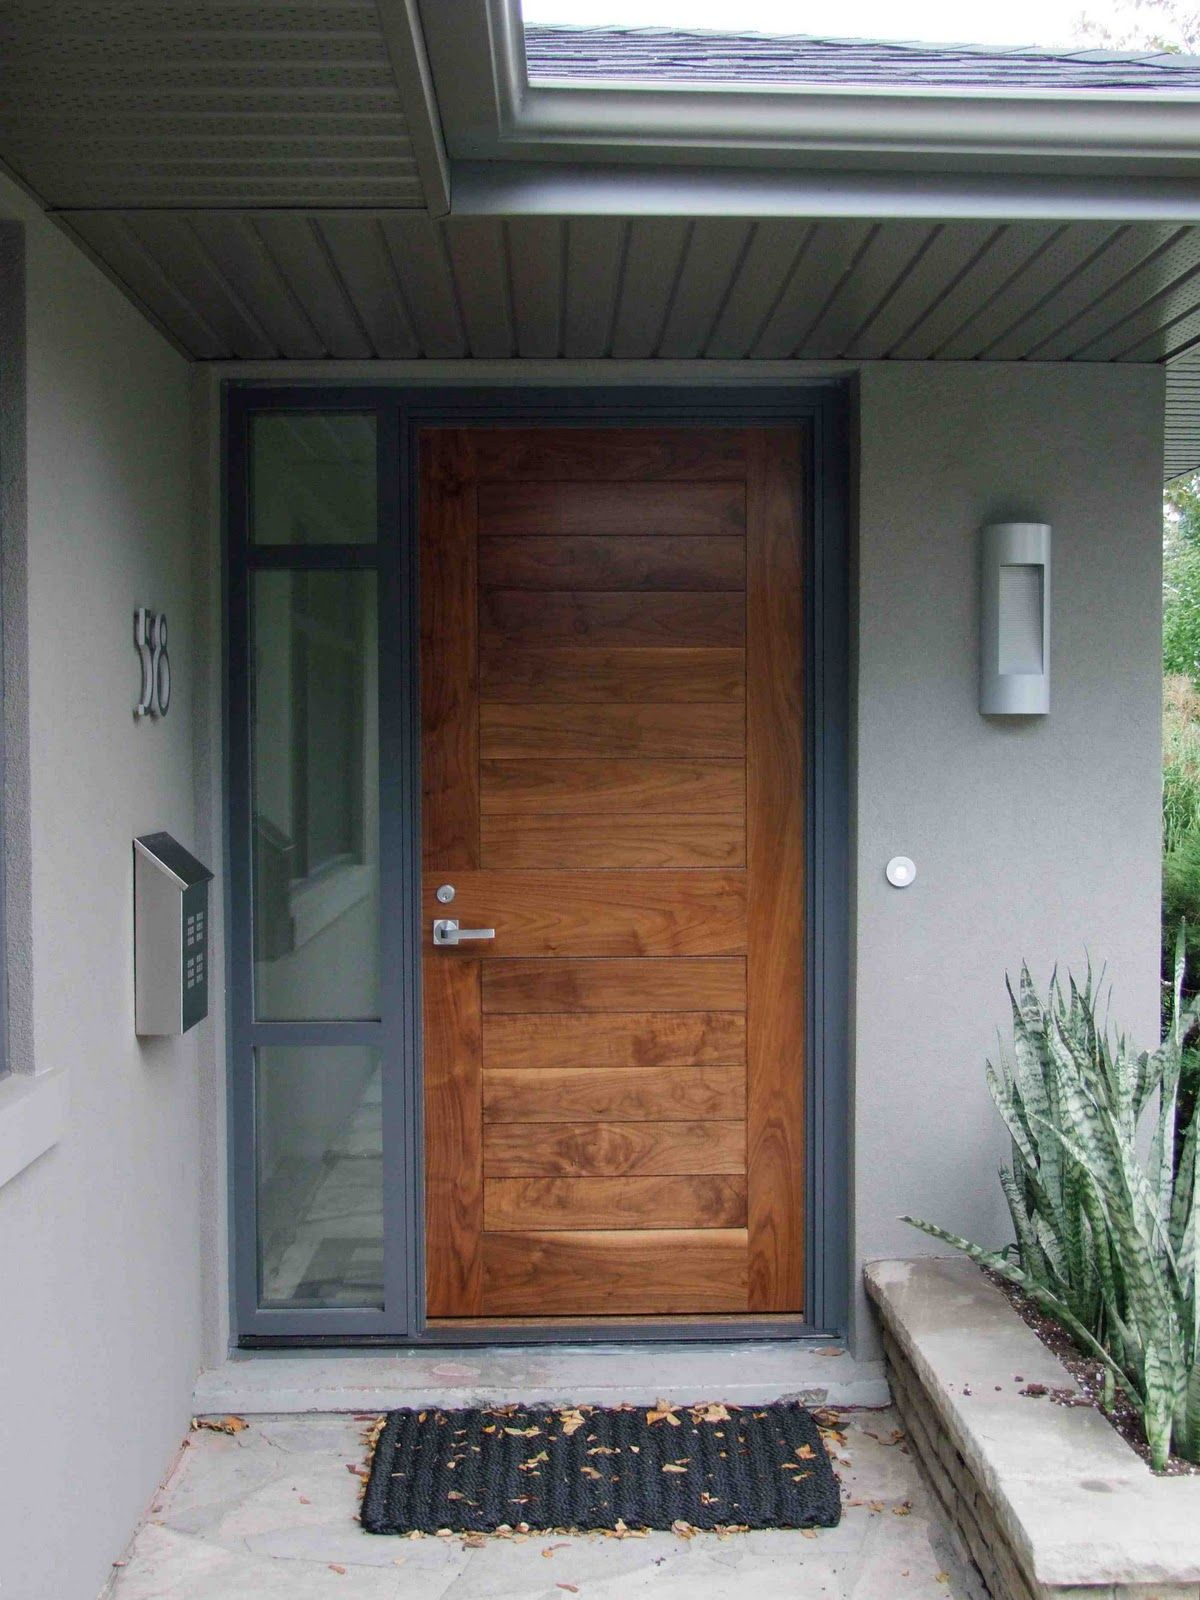 Creed 70 39 s bungalow makes a modern impression bungalow for Modern main door design